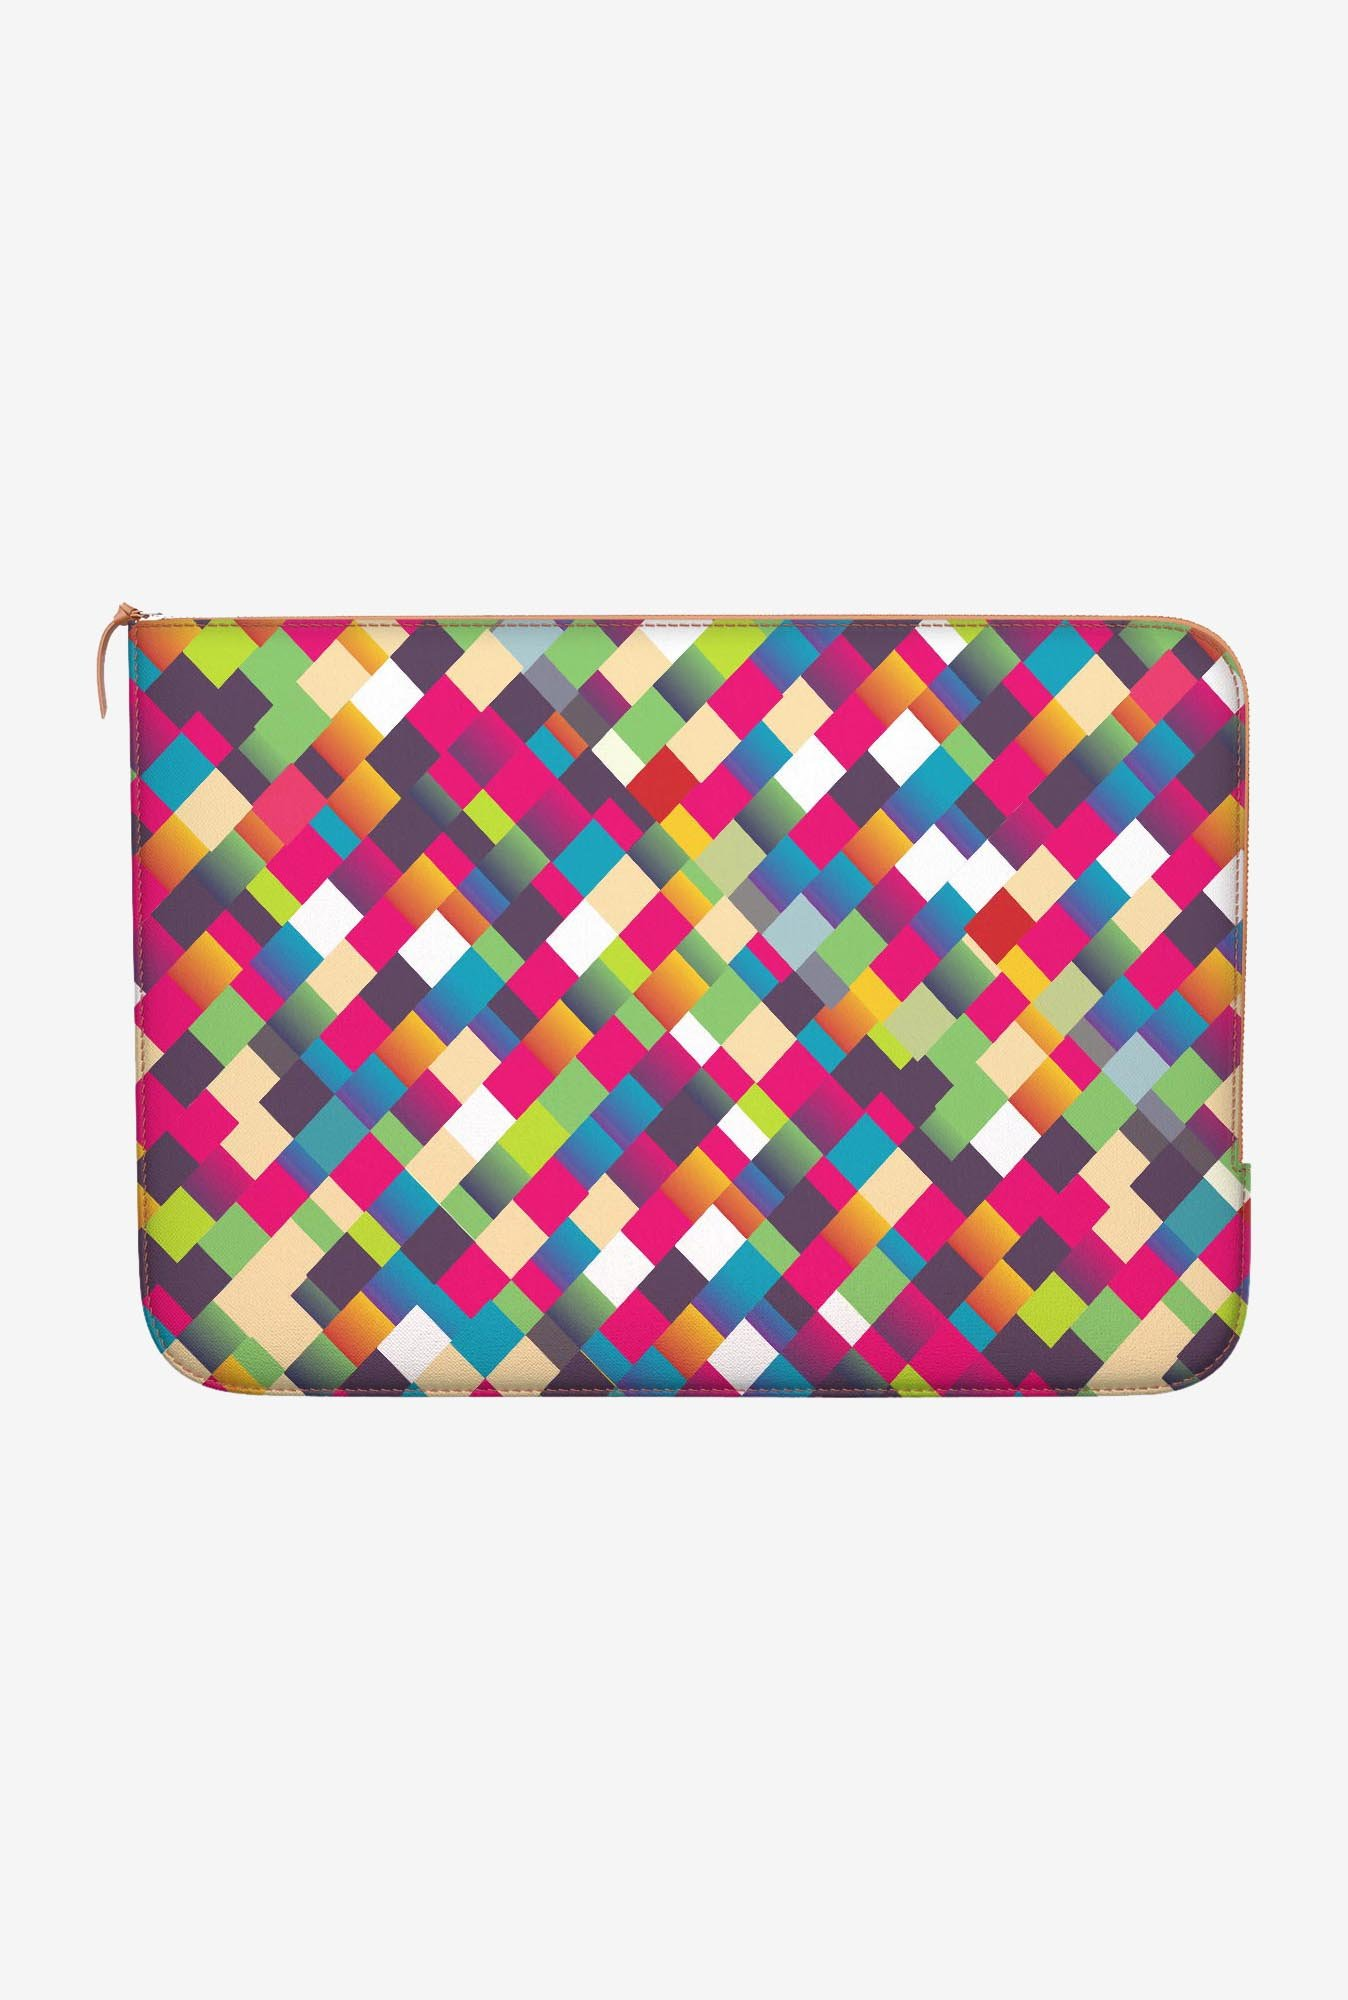 DailyObjects Sweet Pattern MacBook Pro 15 Zippered Sleeve